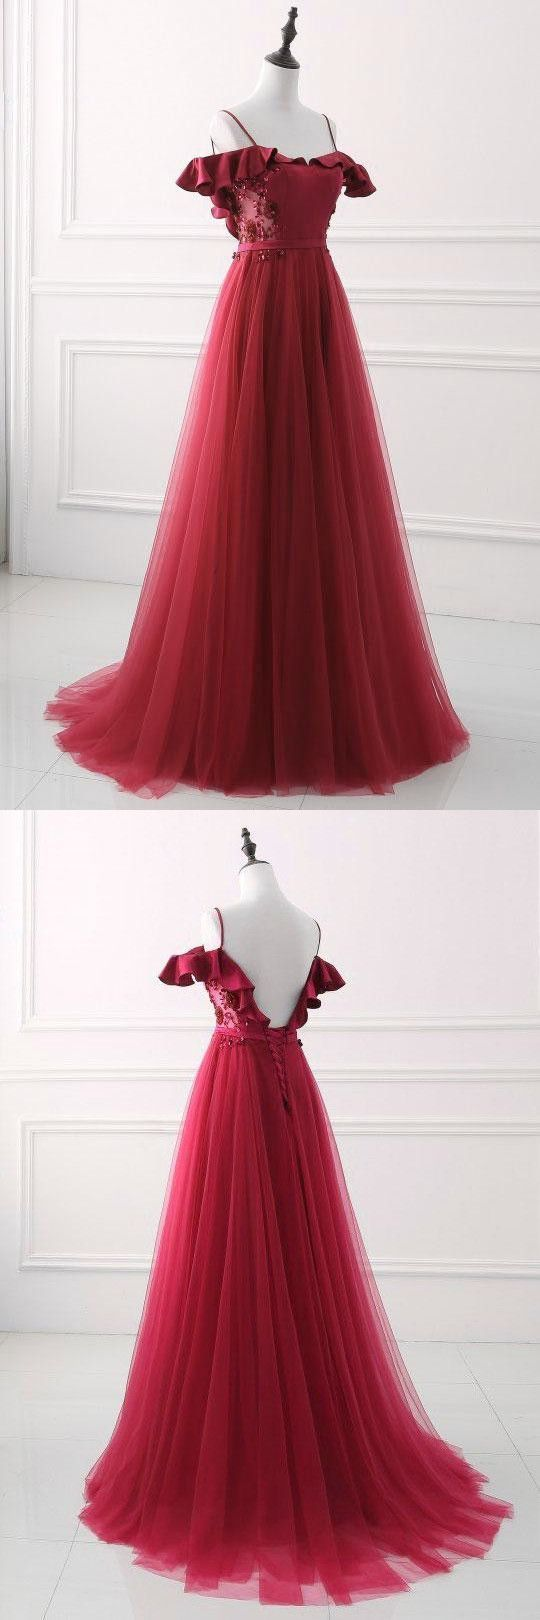 Beautiful Buurgundy Backless Tulle Long Dress, Party Dress 2020